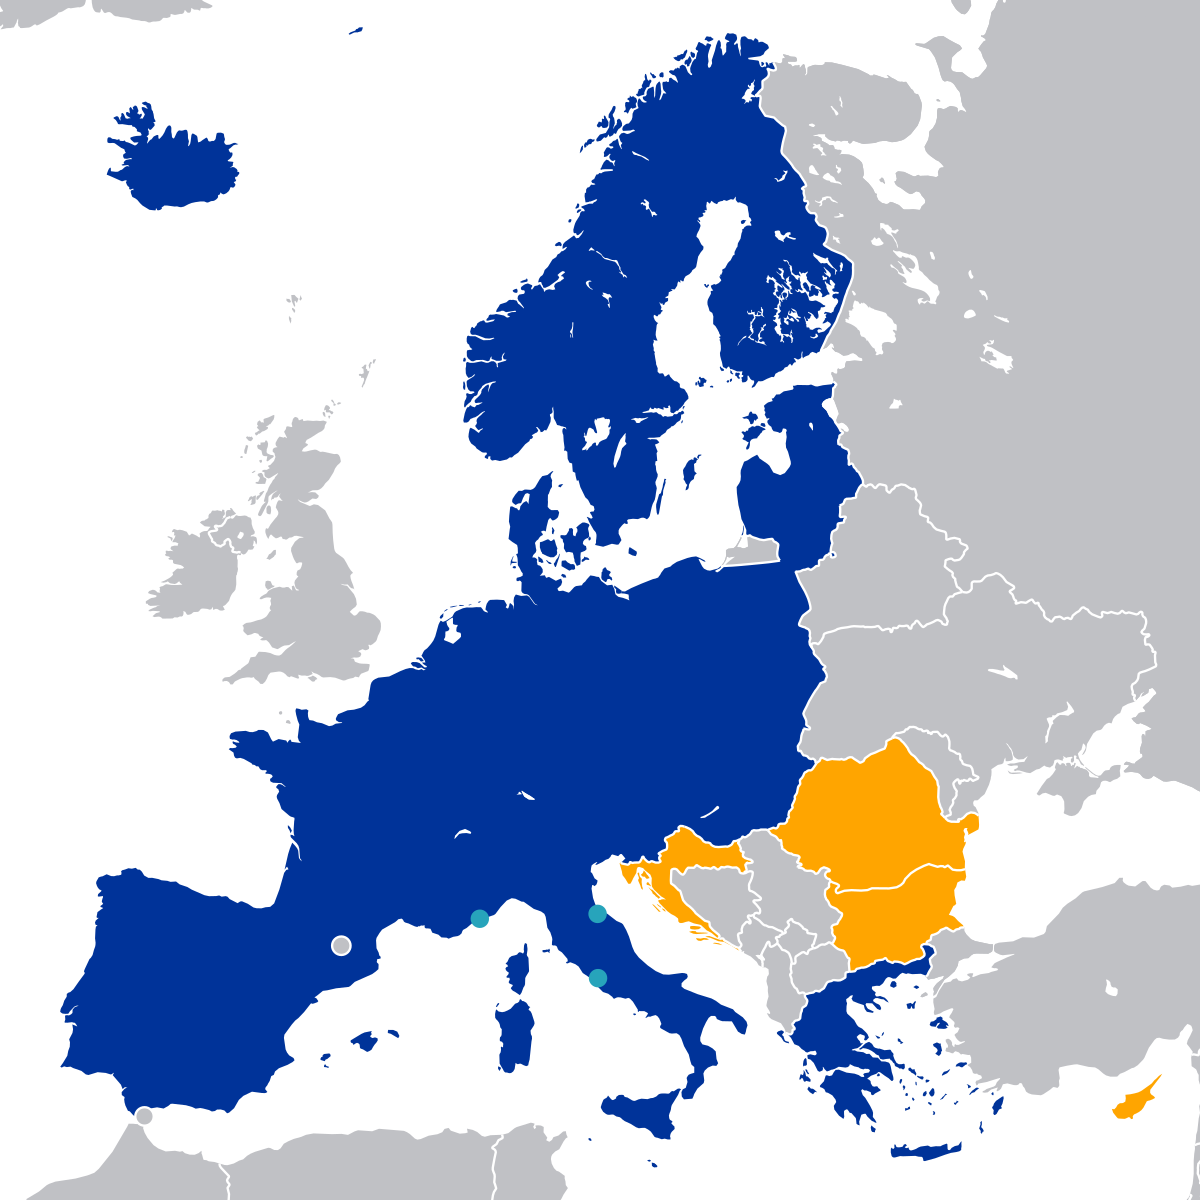 The Schengen countries